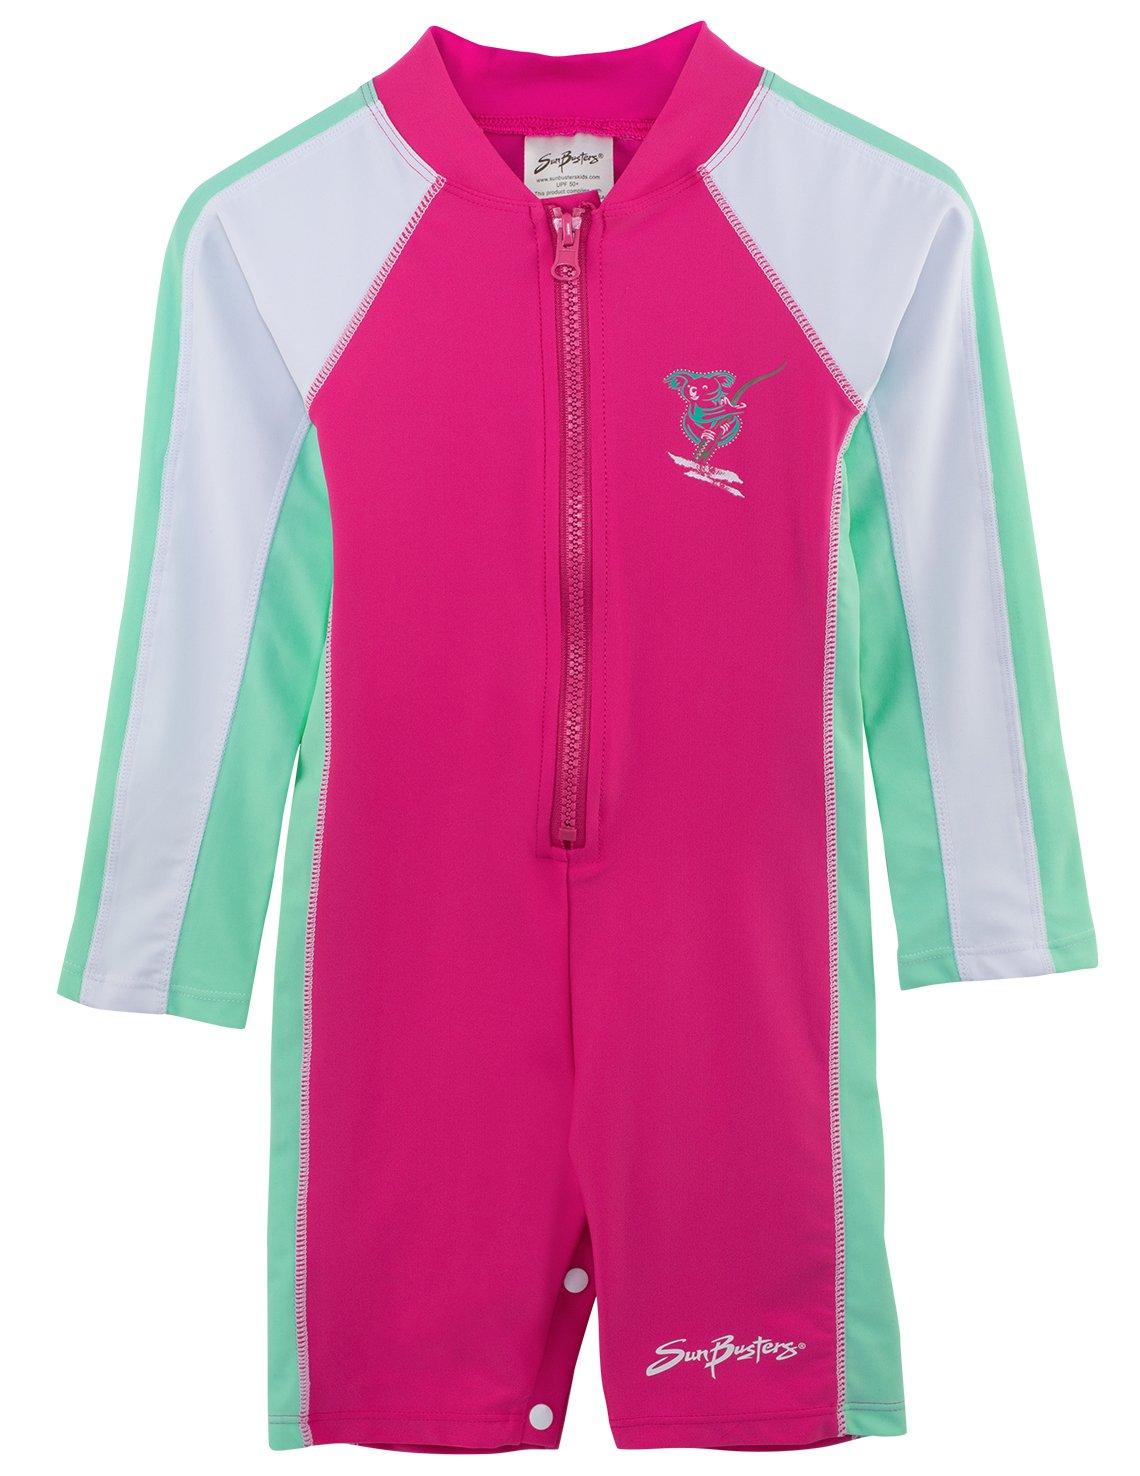 SunBusters Girls One Piece Long Sleeve Sunsuit, UPF 50+ Sun Protection